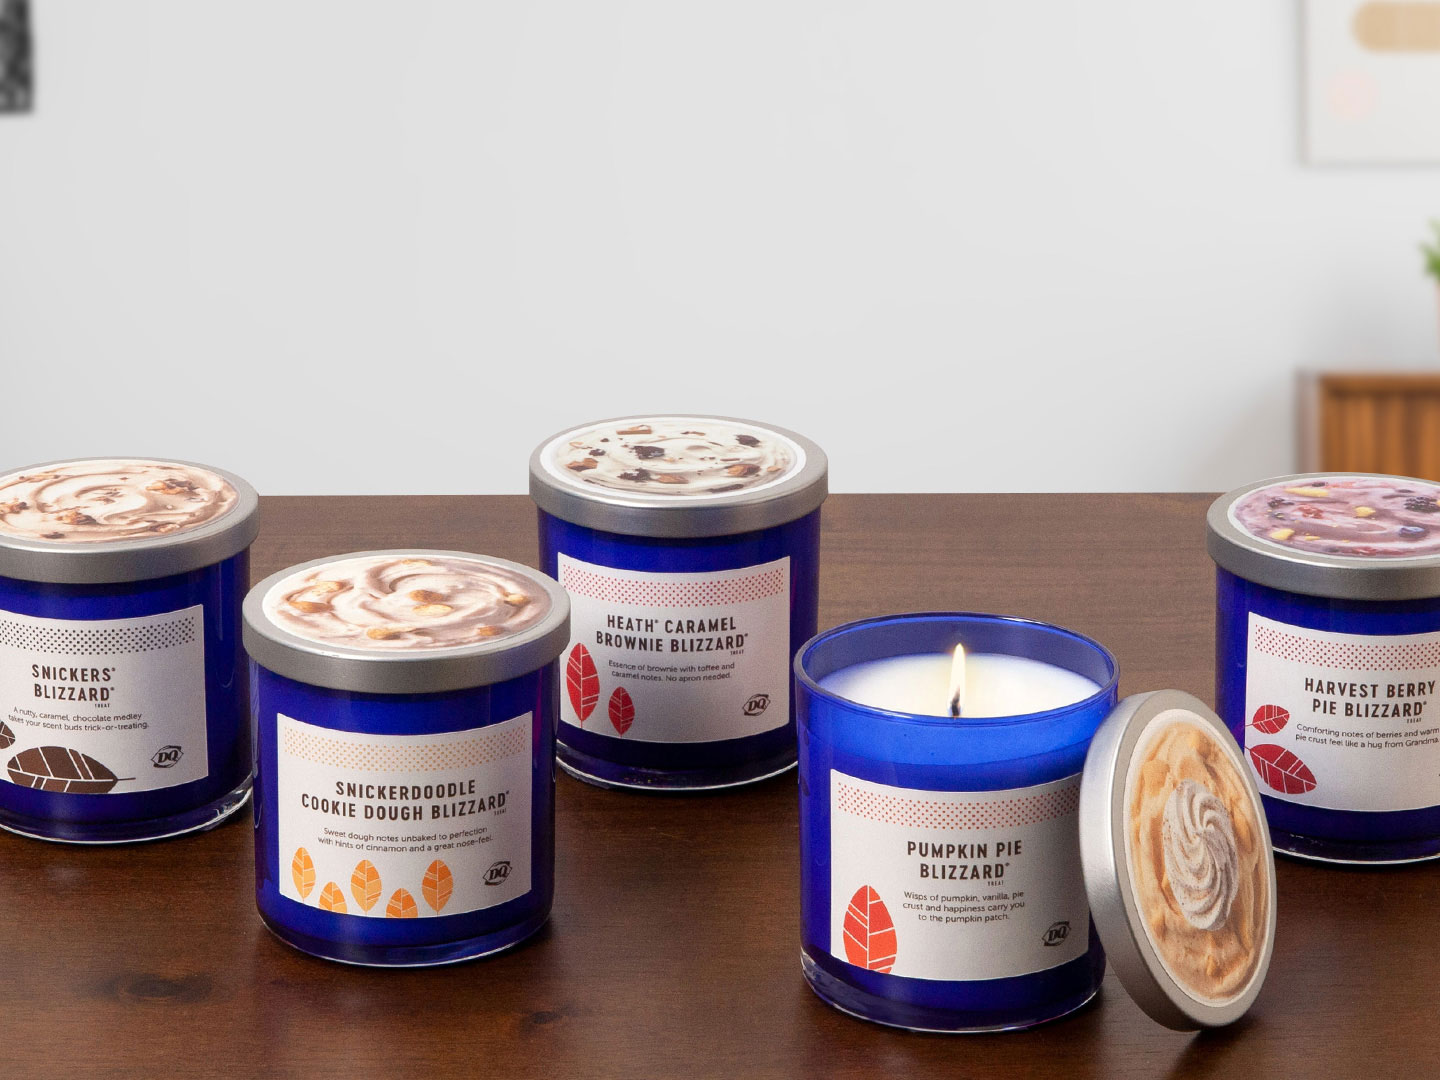 dq-blizzard-candles2-FT-BLOG0819.jpg